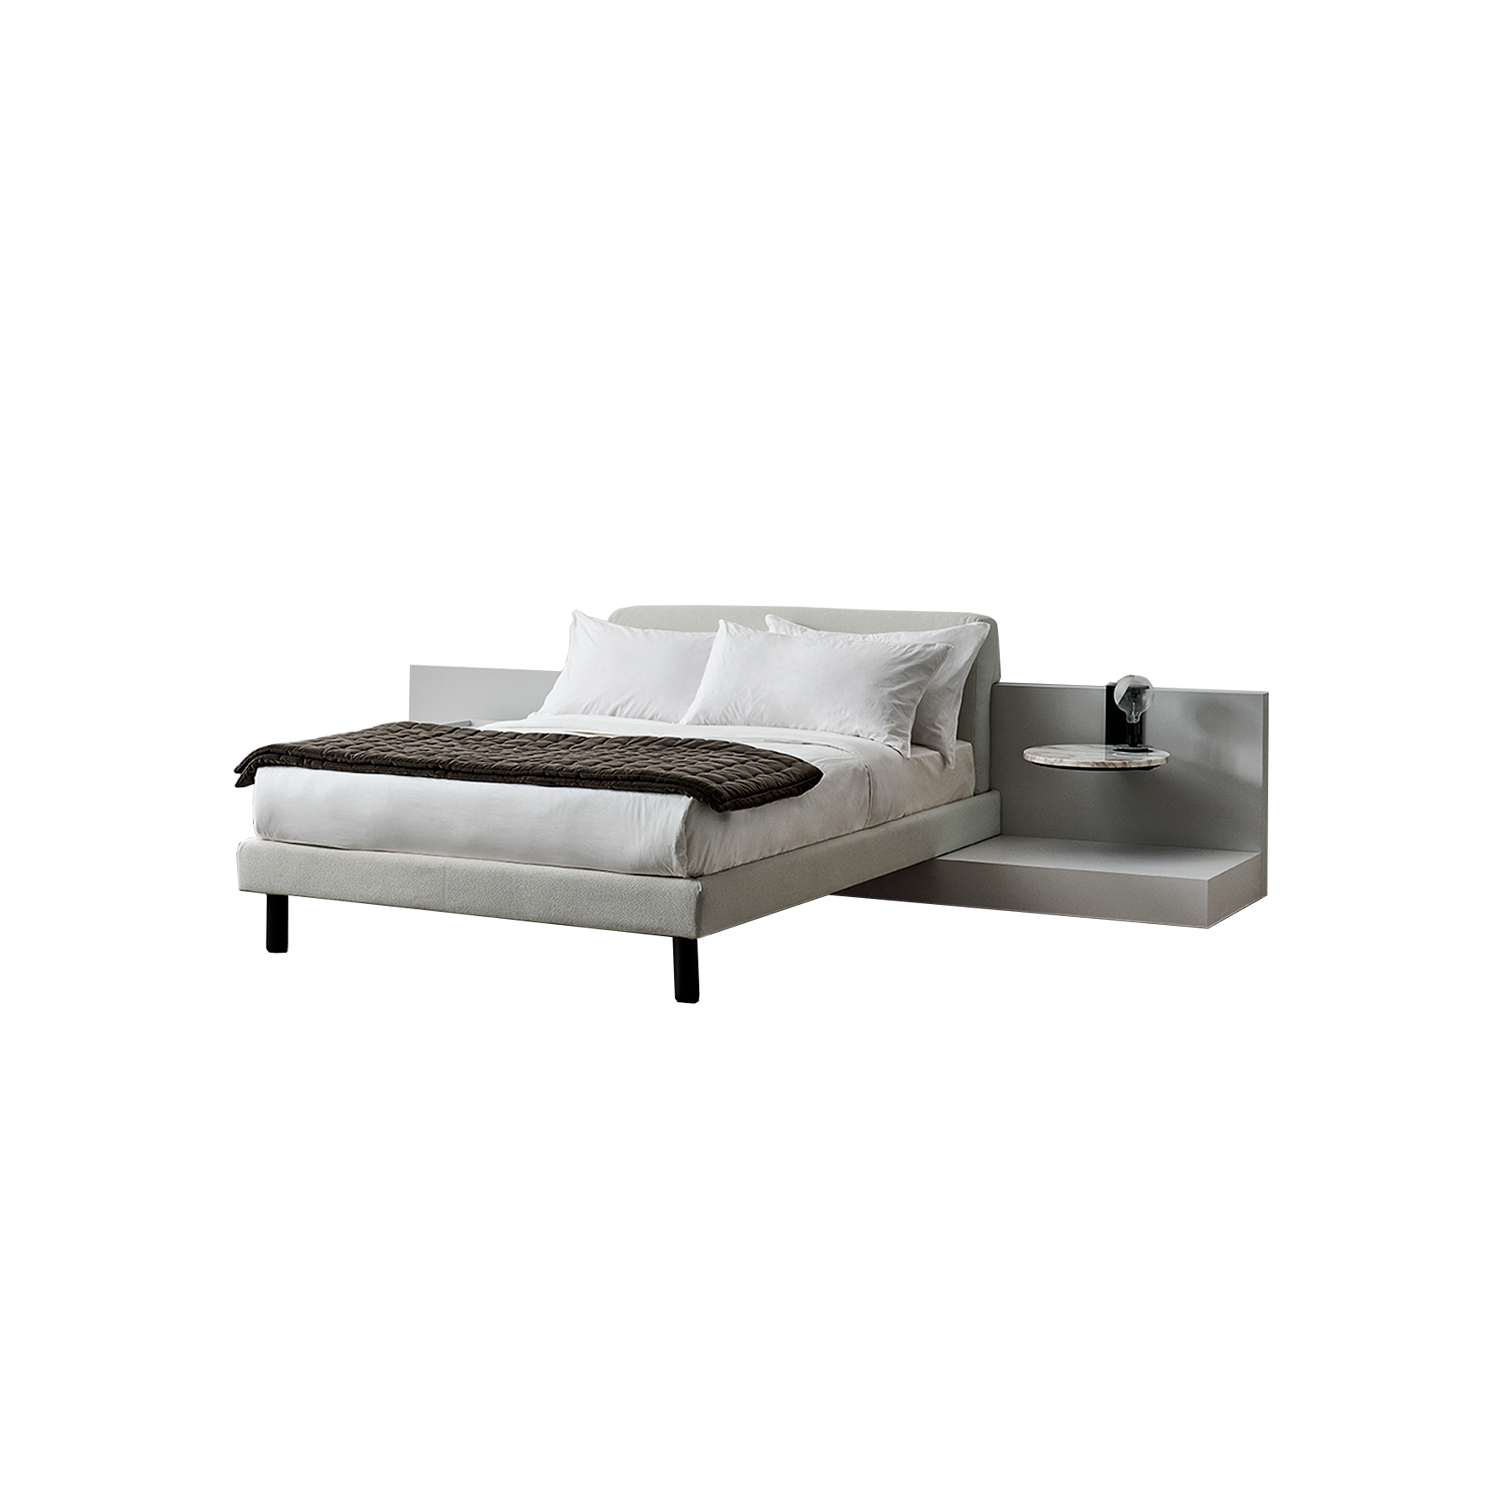 Cliff Modular Bed - A collection of modular beds, rich and refined in terms of both structure and details: it allows the outmost compositive freedom with its headboards and bases available in a wide selection of dimensions, finishes and accessories. The L-shaped structure is the bed base and supports the headboard: the horizontal panels on both sides of the bed can be used to stack books or to place lamps, or may be completed with one of the many complements. The entire range is about flexibility, even in the finishes: headboard and base can be either manufactured in the same material or with different ones for a visually, extremely rich solution.  The bed is available in different colours and configurations. Please enquire for more details | Matter of Stuff